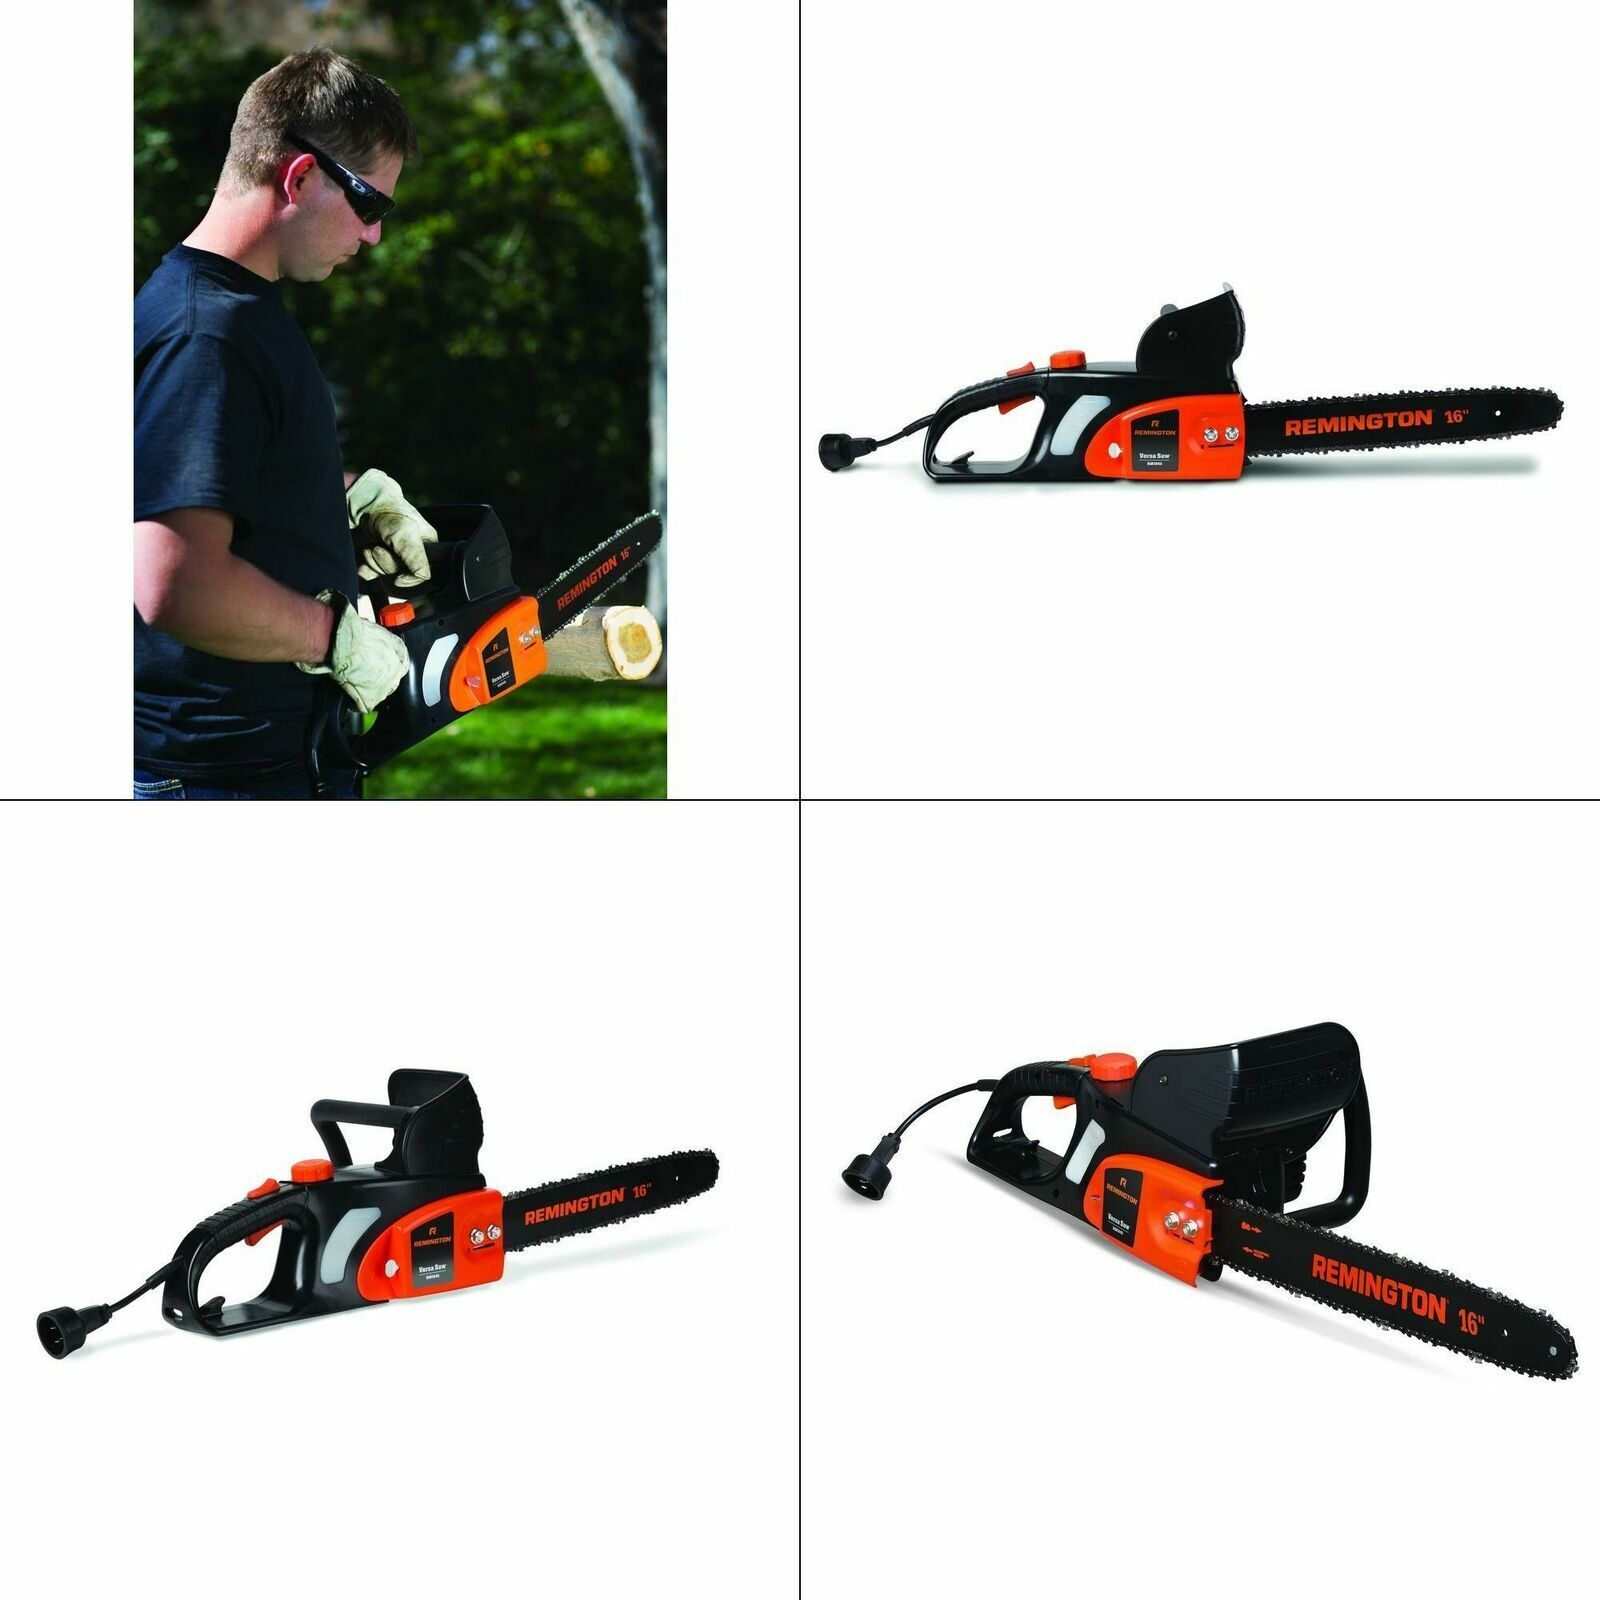 Remington RM1635W 12 Amp 16-in Electric Chain Saw